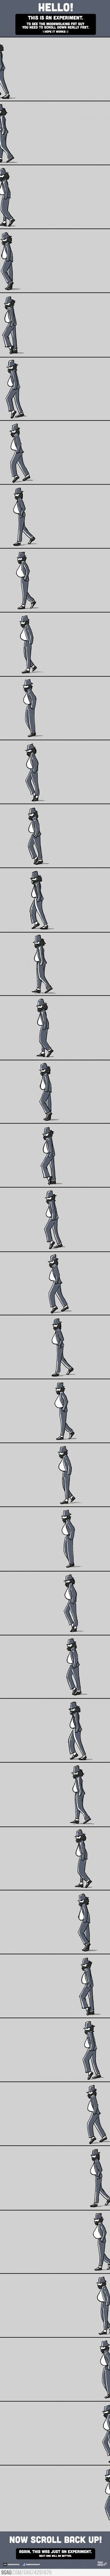 Moonwalk Experiment...so cool